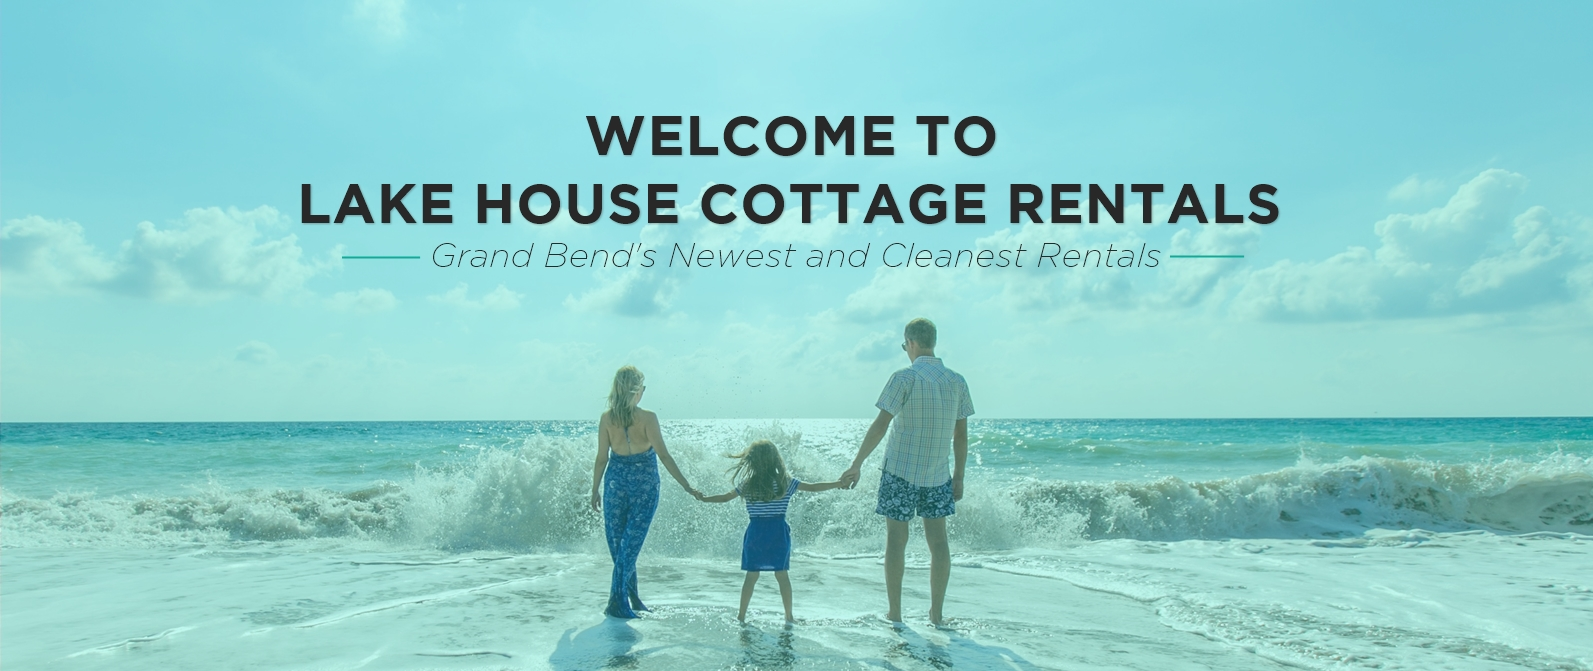 Lake House Cottage Rentals